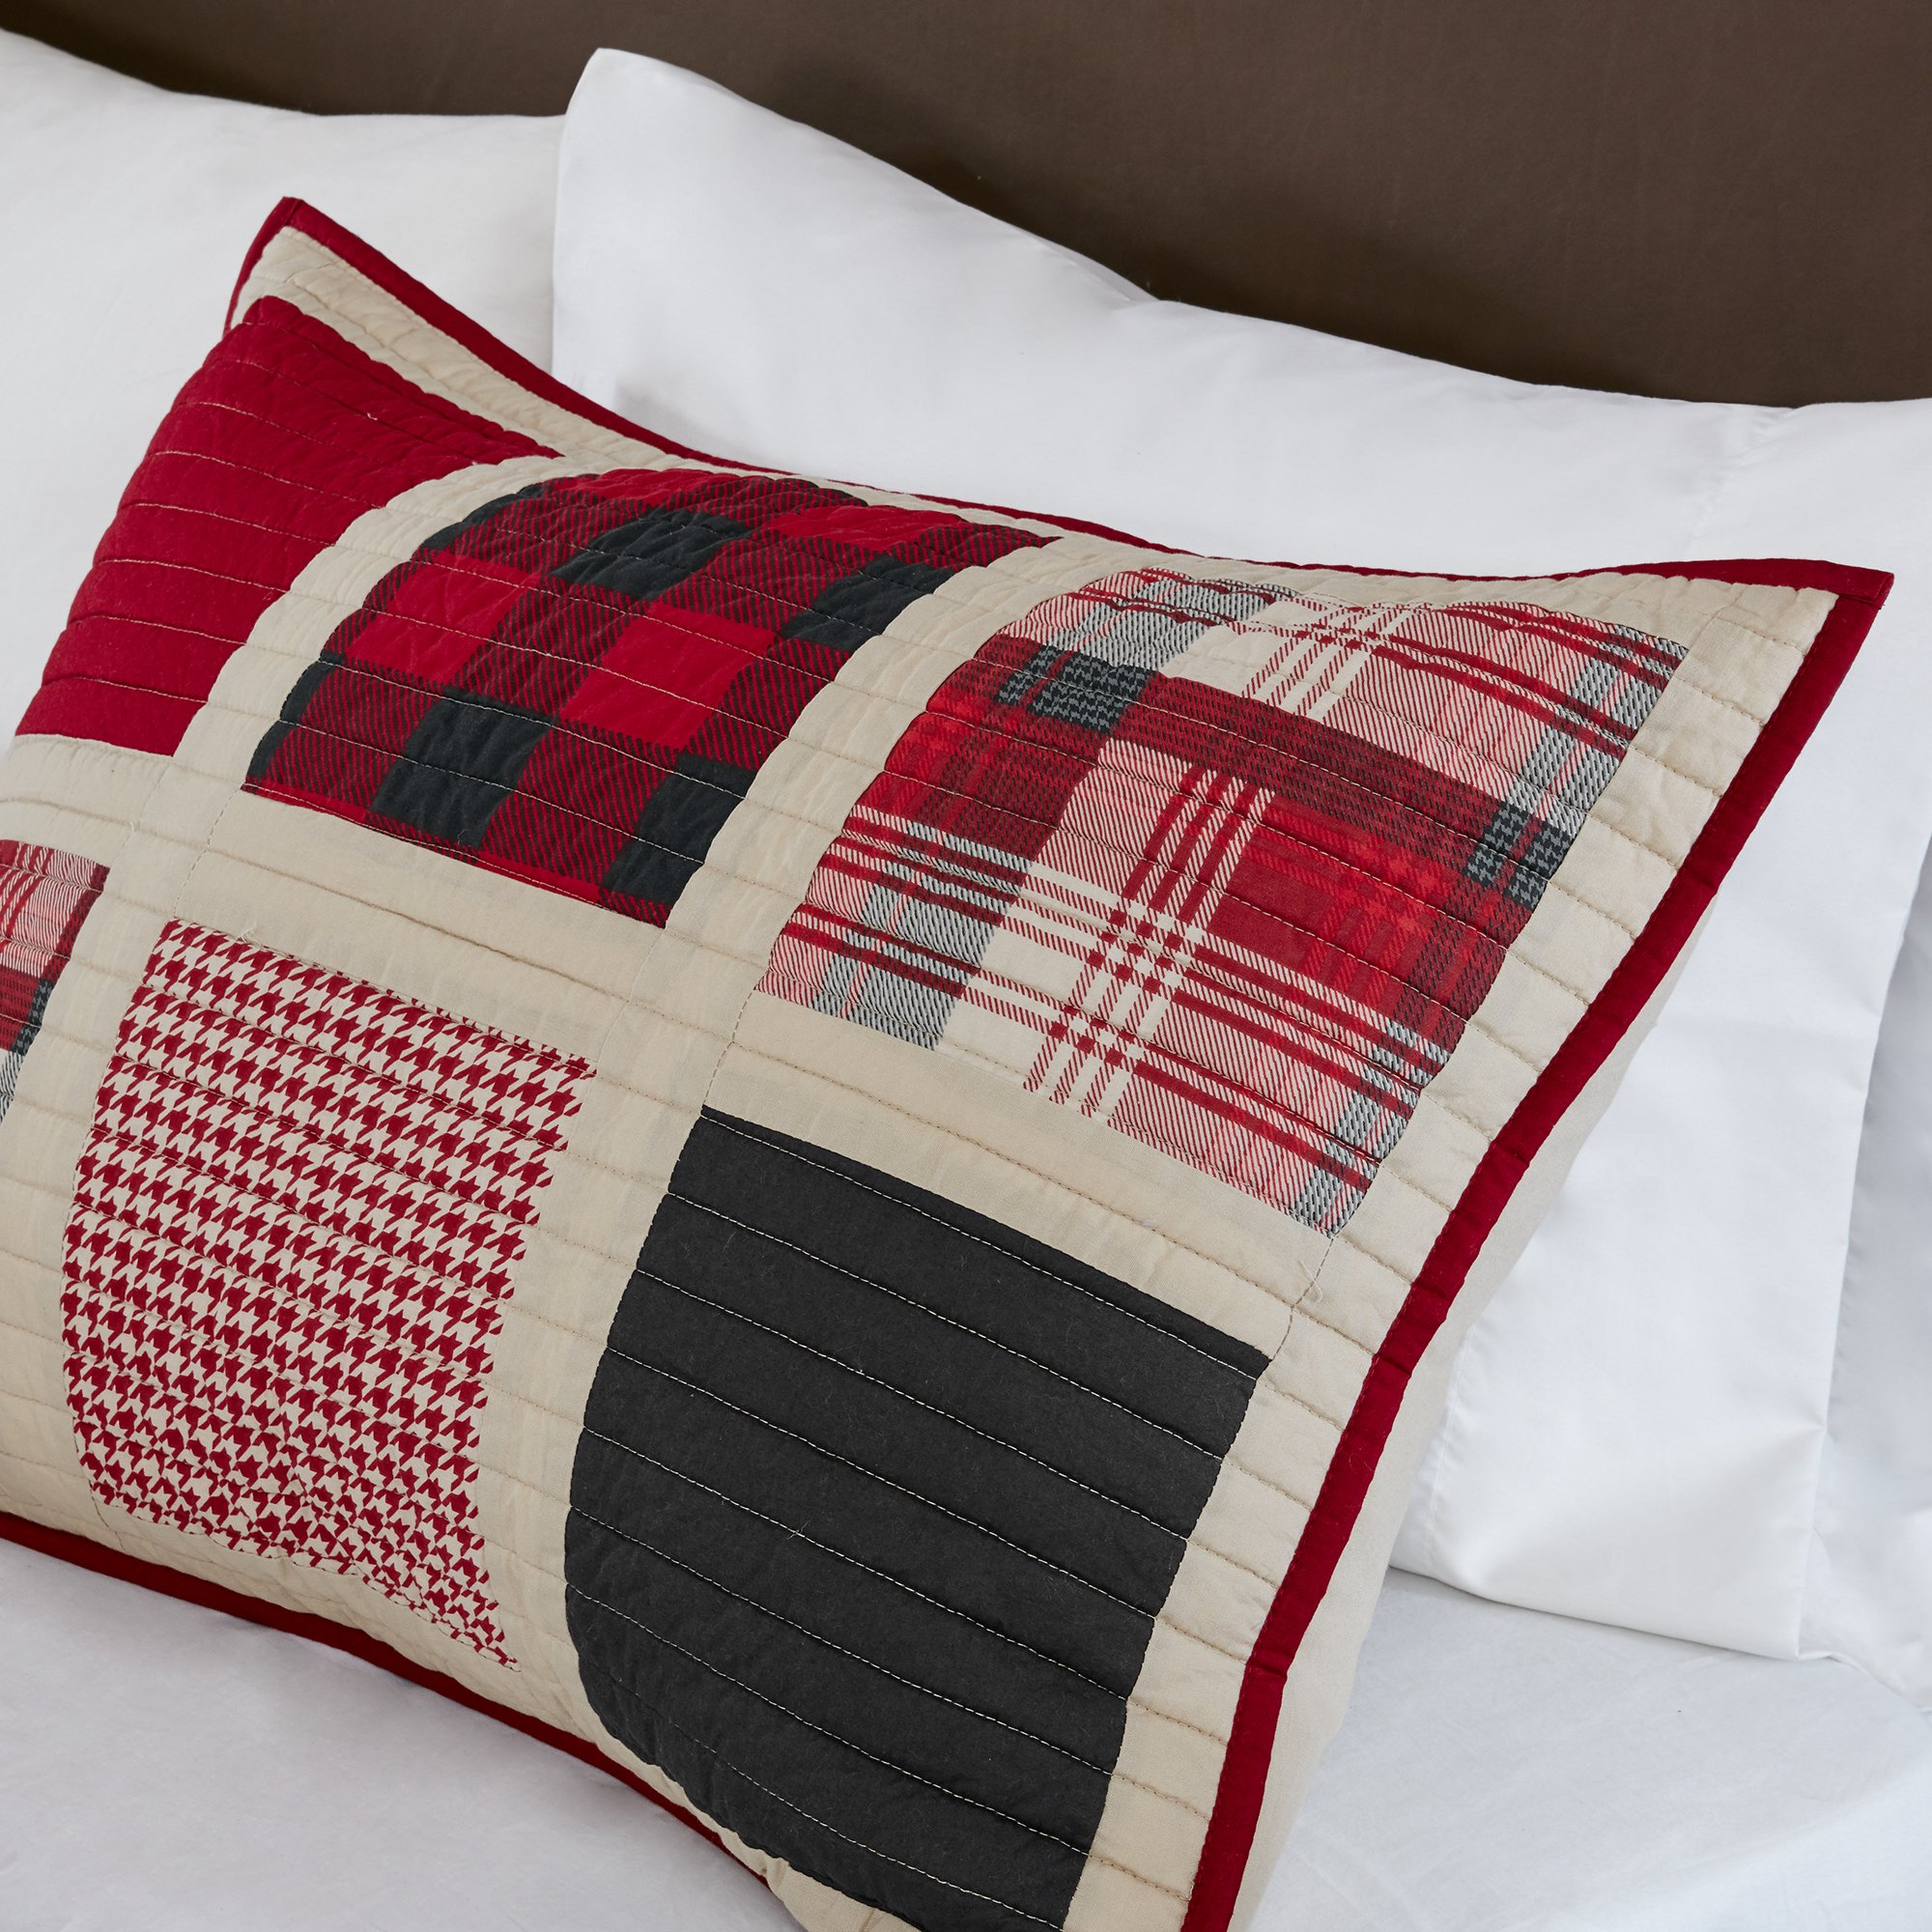 Woolrich Huntington King/Cal King Size Quilt Bedding Set - Red, Pieced Plaid – 3 Piece Bedding Quilt Coverlets – 100% Cotton Percale Bed Quilts Quilted Coverlet